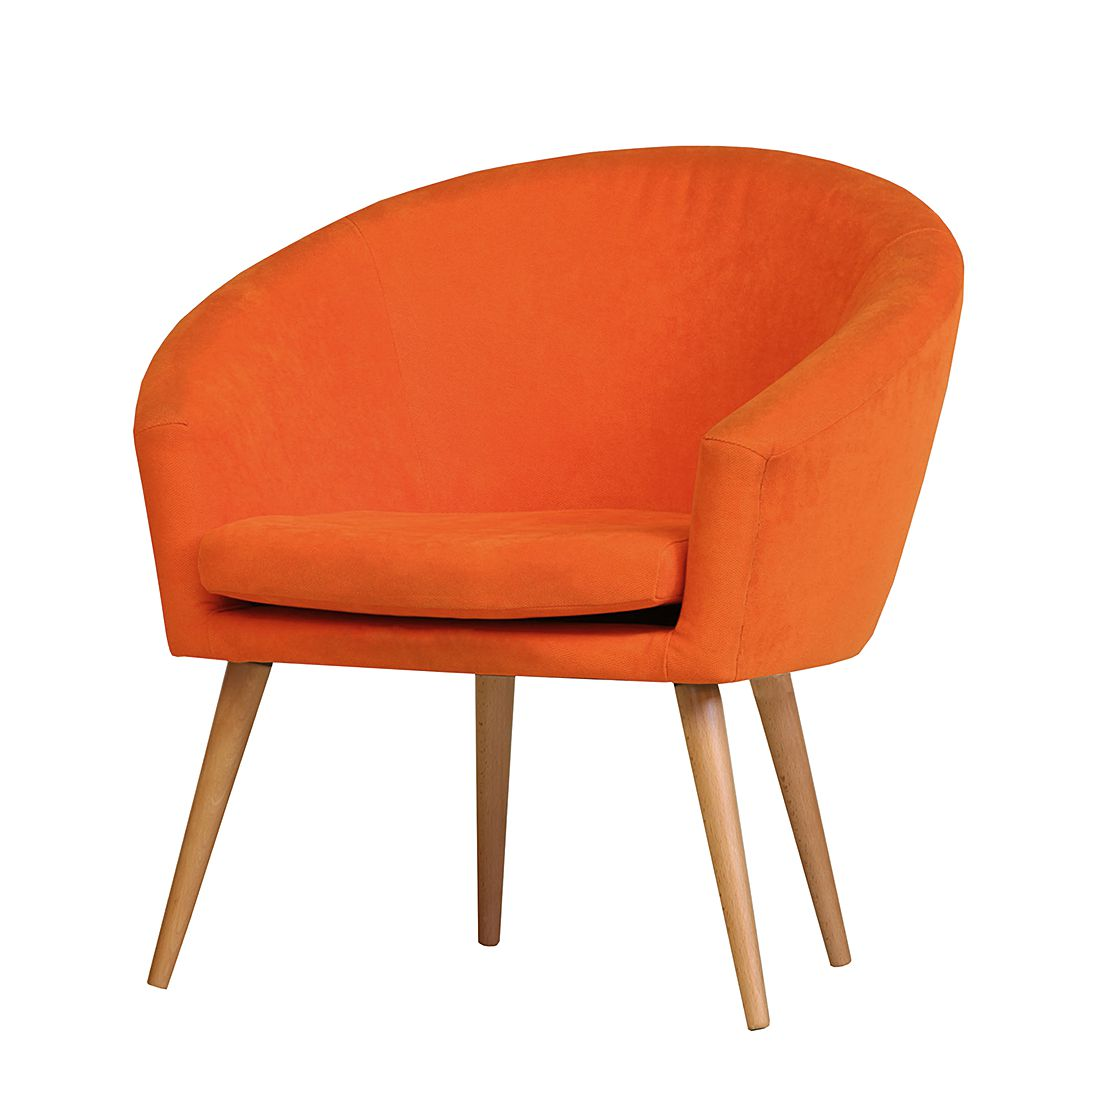 Sessel orange preis vergleich 2016 for Sessel orange